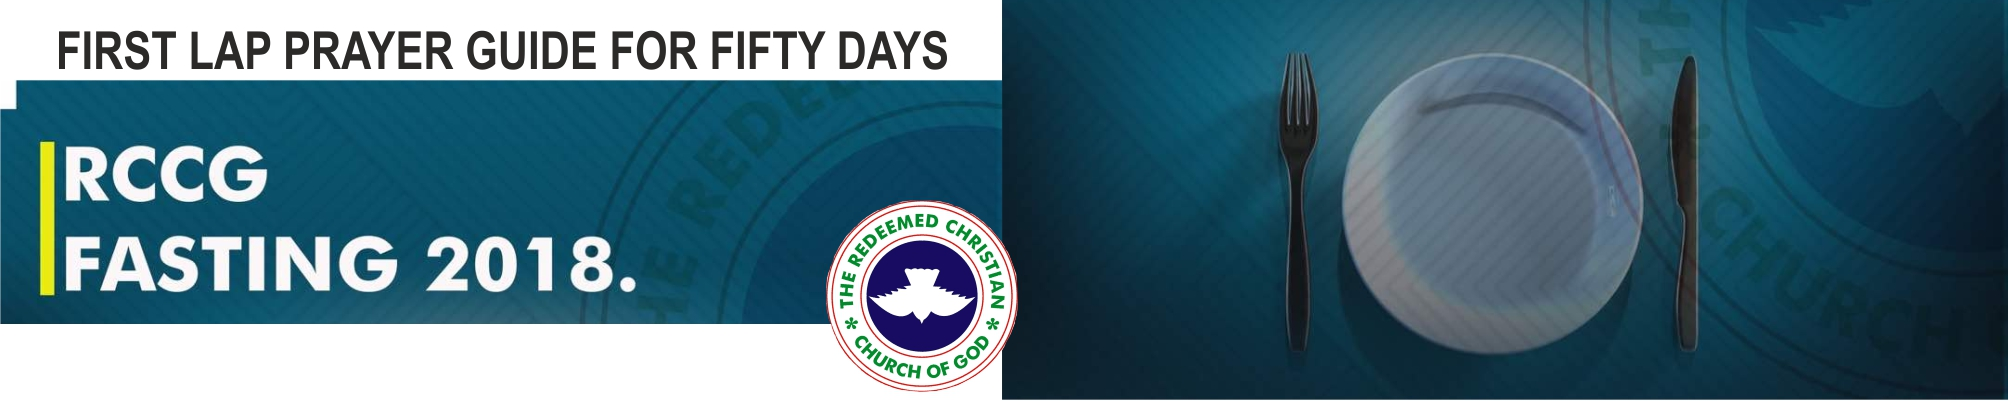 2018 RCCG First Lap Prayer Guide For Fifty Days Fasting And Prayers